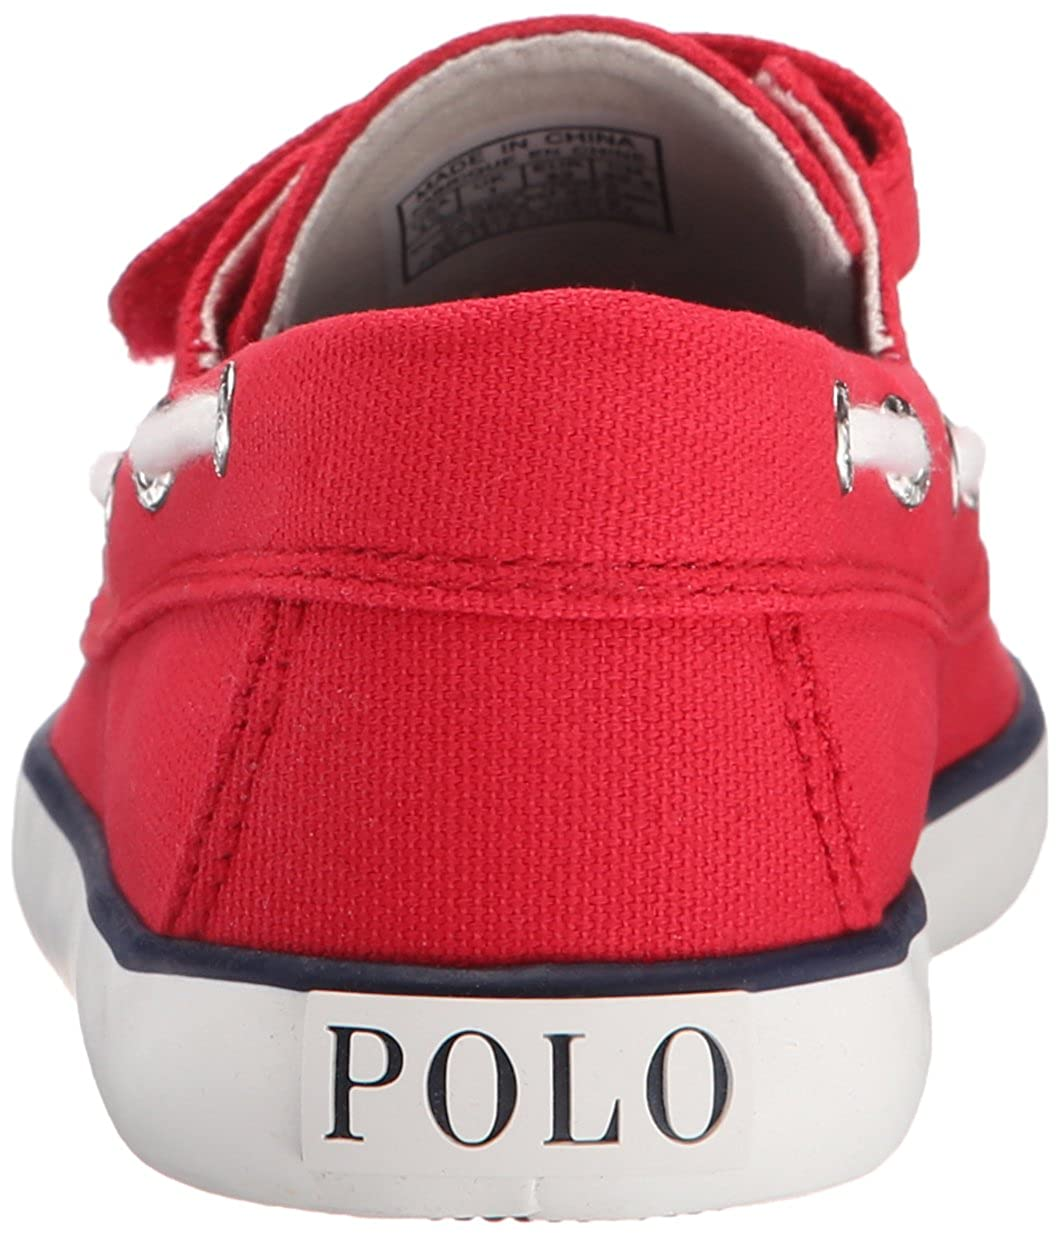 Polo Ralph Lauren Kids Sander EZ R Canvas N PP Fashion Sneaker SANDER EZ RED CANVAS Toddler//Little Kid NAVY PP K